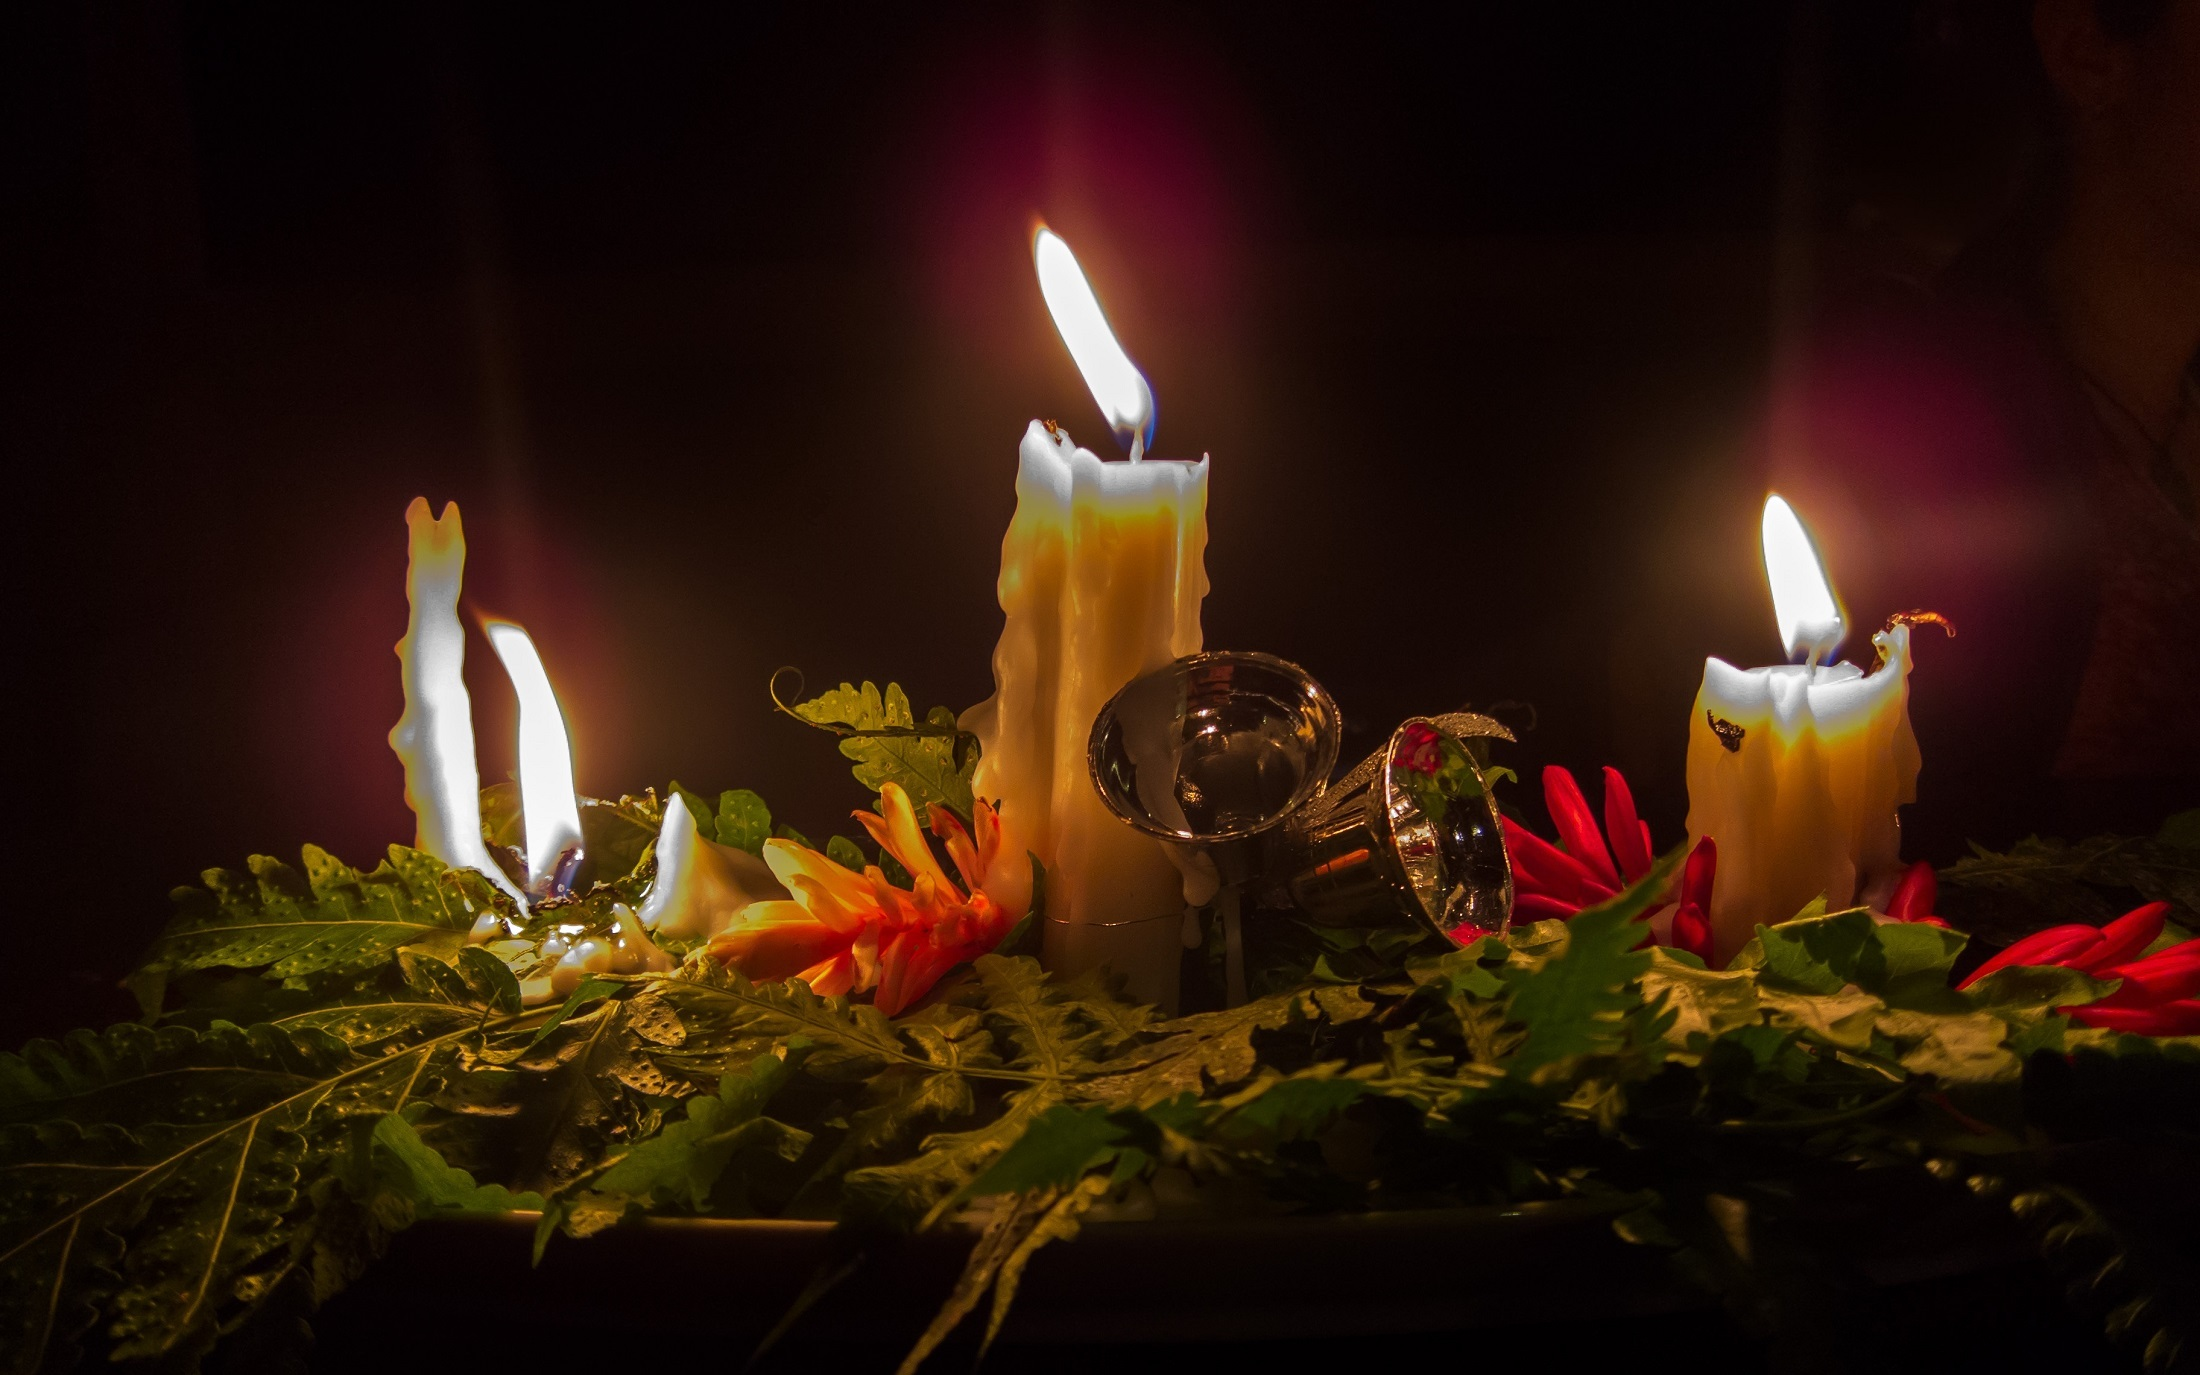 Christmas Candles, Burning, Candle, Christmas, Festival, HQ Photo